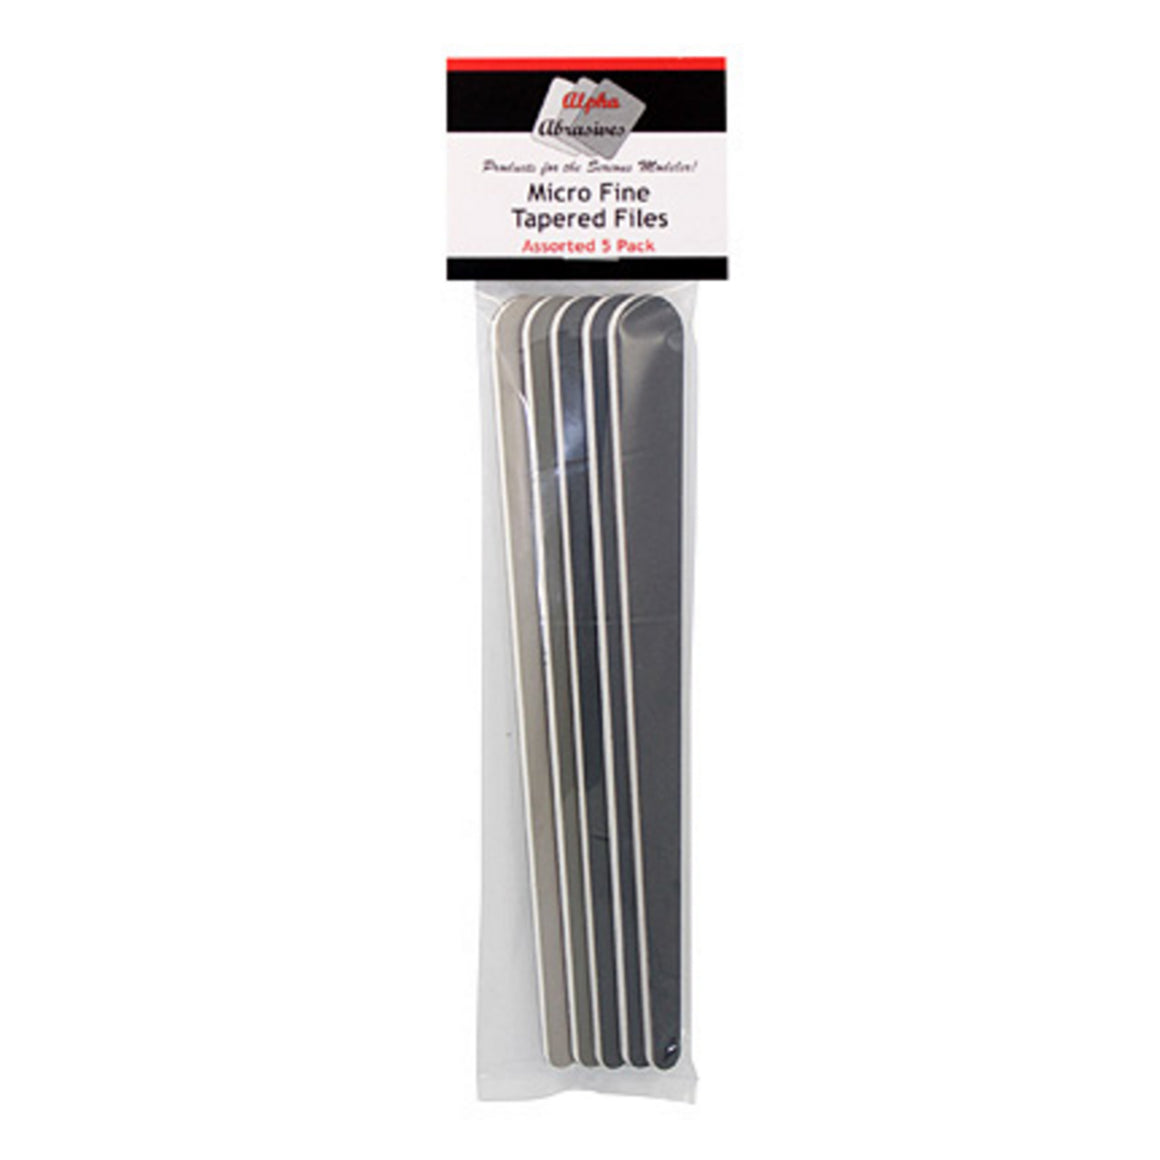 Micro Fine Tapered Files - 5-Pack